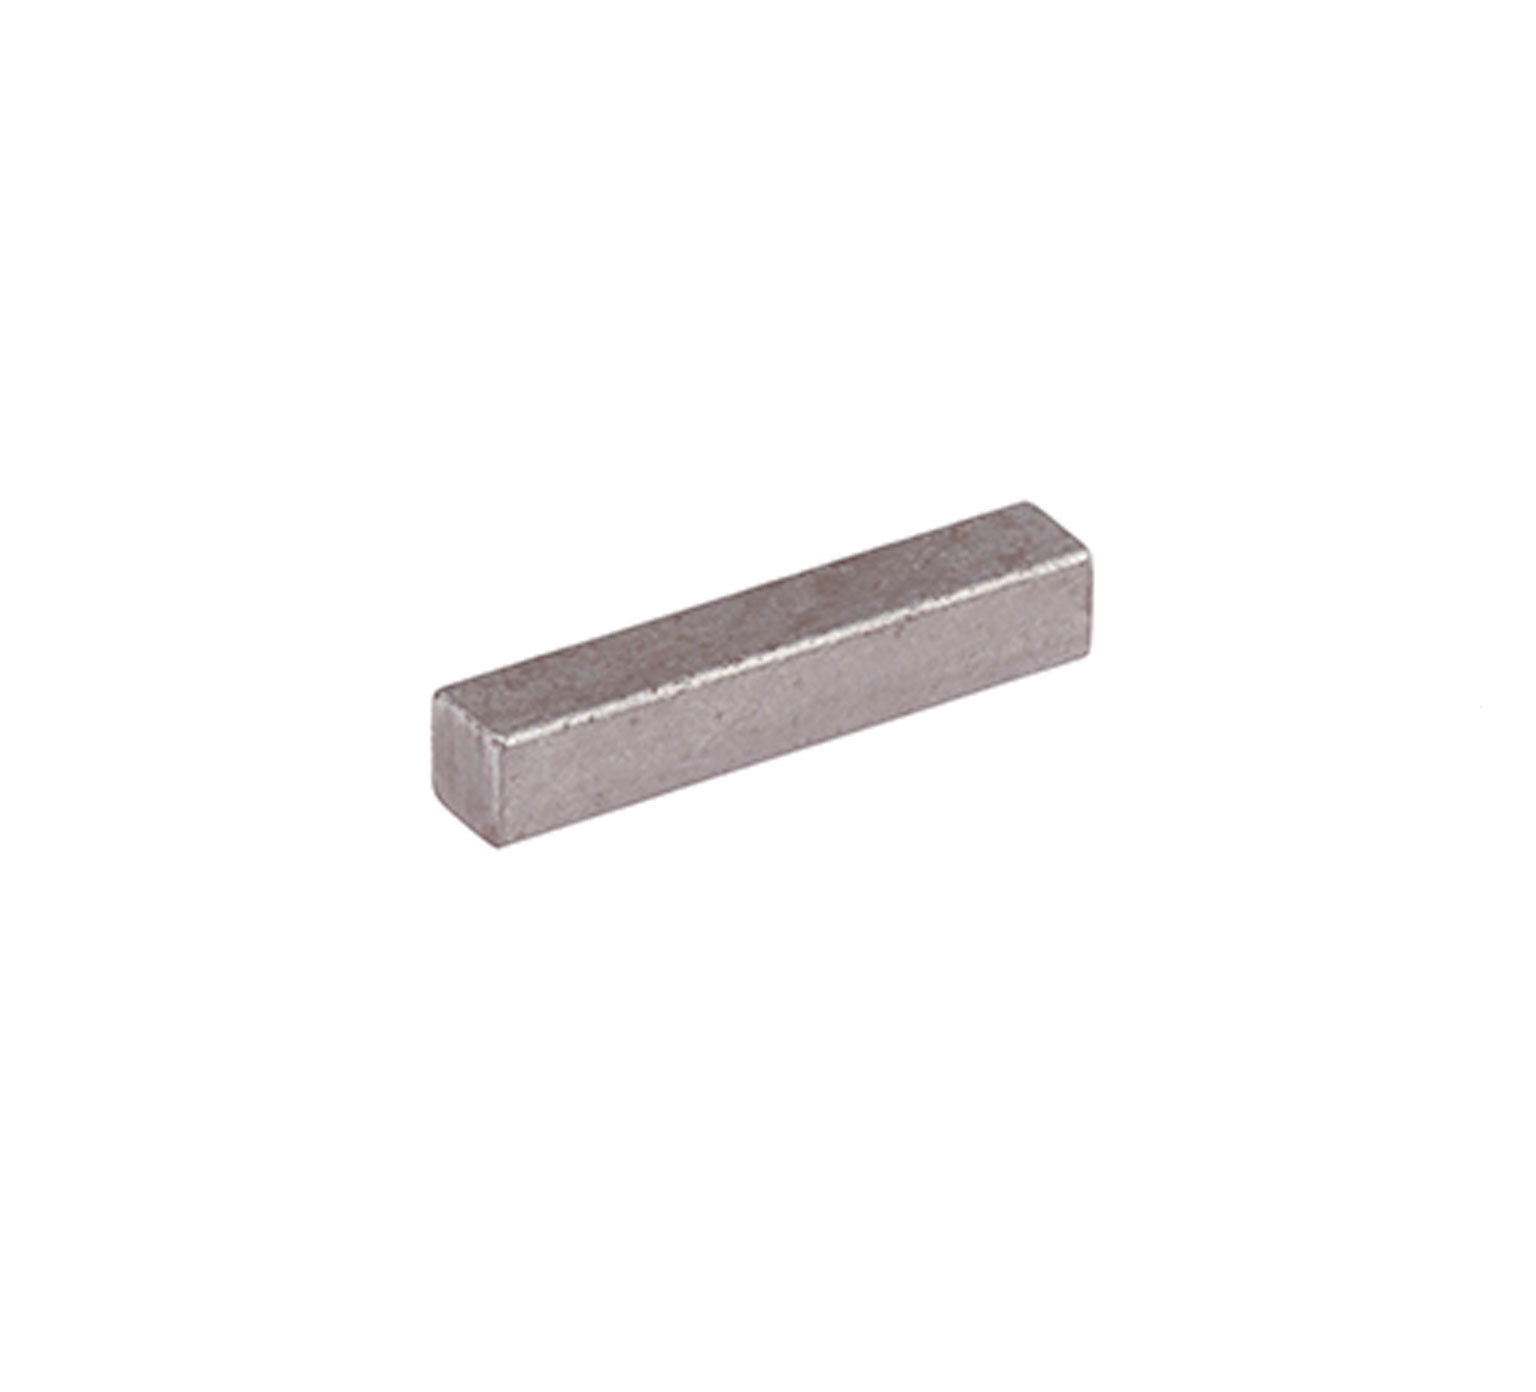 00912 Cold Rolled Steel Key - 0.187 x 0.187 x 1 in alt 1